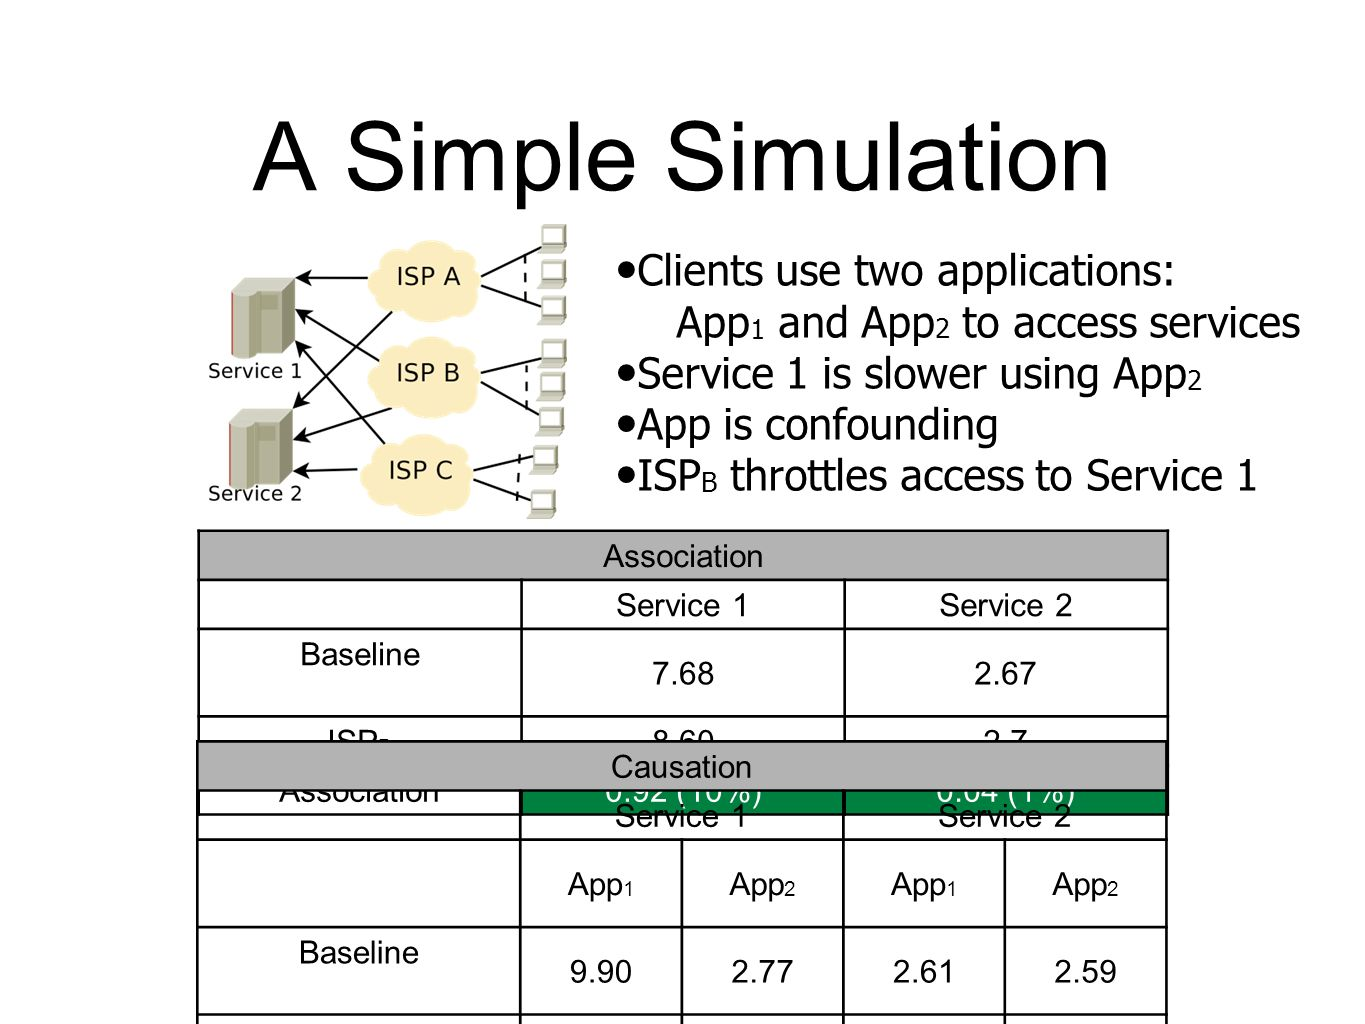 A Simple Simulation Clients use two applications: App 1 and App 2 to access services Service 1 is slower using App 2 App is confounding ISP B throttles access to Service 1 Association Service 1Service 2 Baseline ISP B Association0.92 (10%)0.04 (1%) Causation Service 1Service 2 App 1 App 2 App 1 App 2 Baseline ISP B Causation 2.05 (20%) 5.18(187 %) 0.06(2%)0.12(4%)